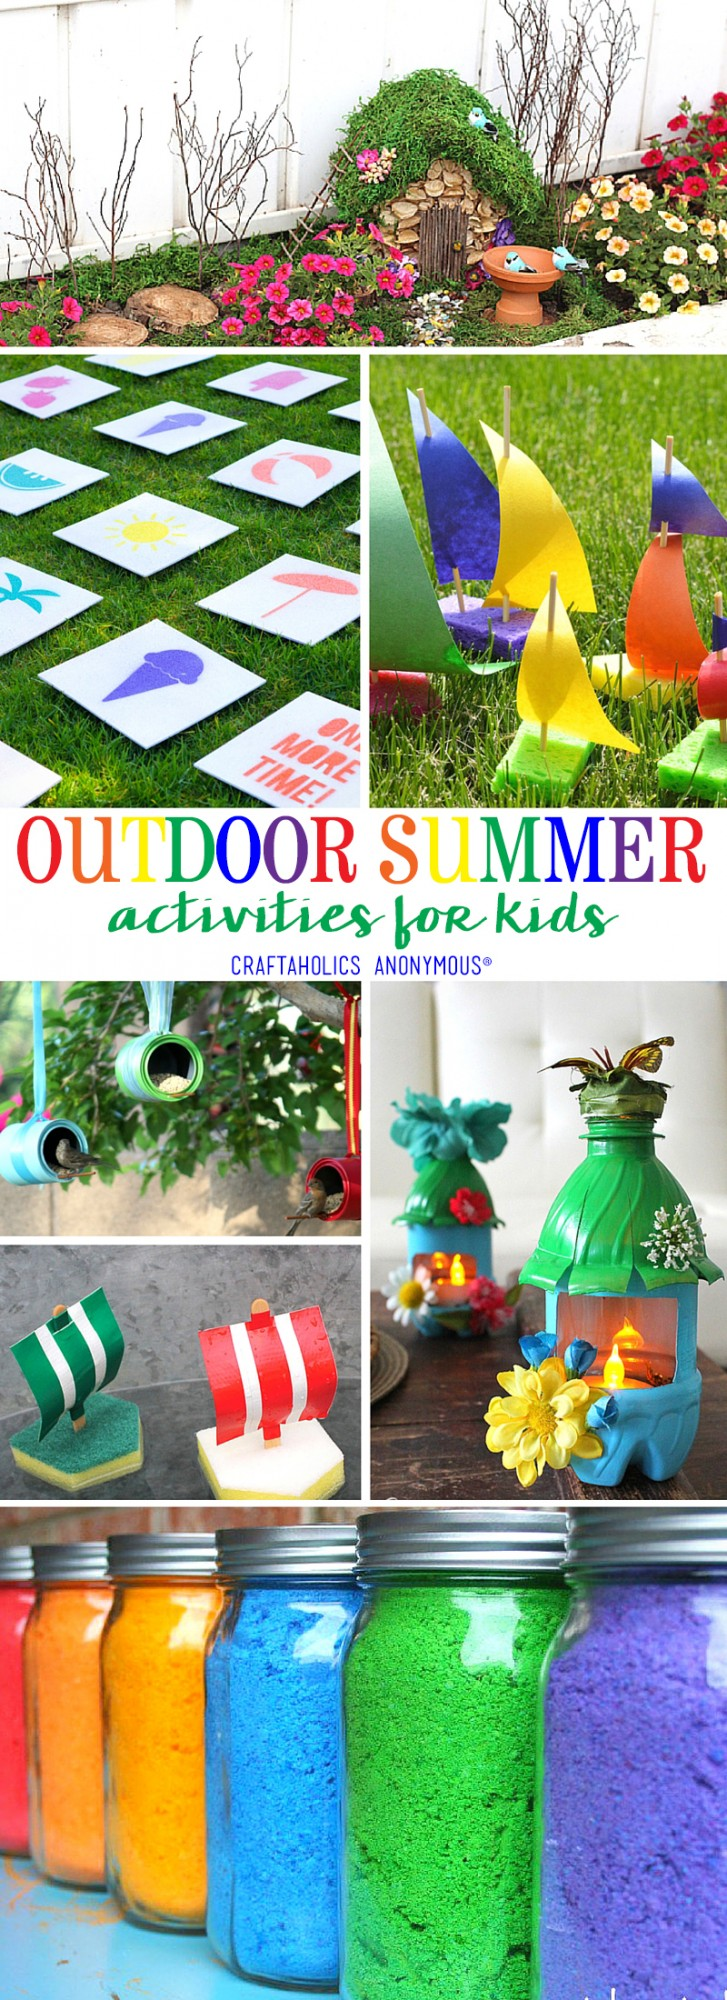 Outdoor Summer Activities for Kids at Craftaholics Anonymous